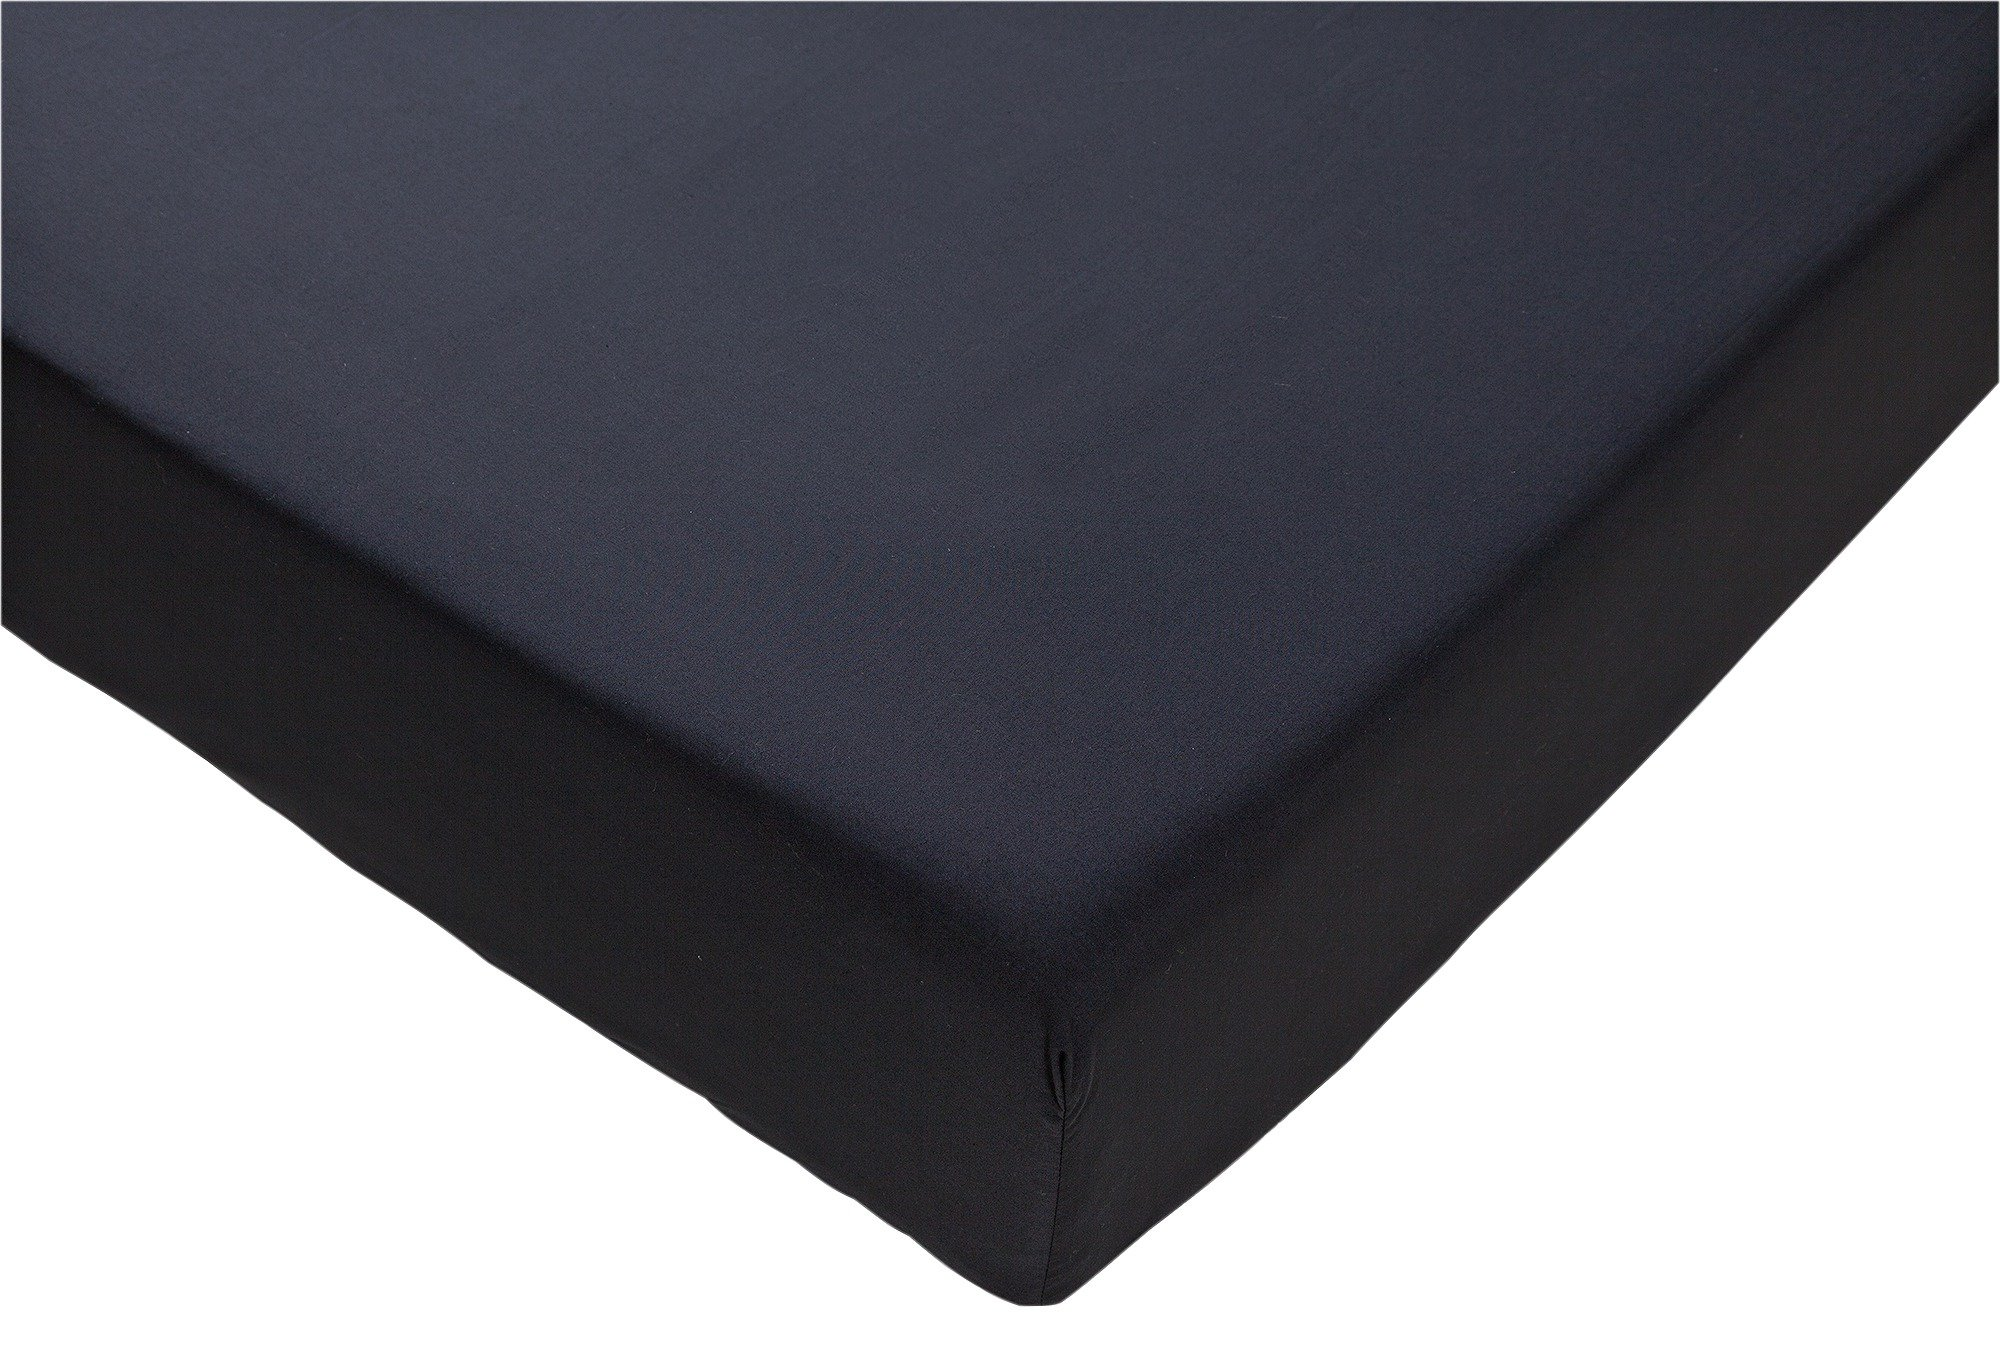 Argos Home Black Cotton Rich Fitted Sheet - Double